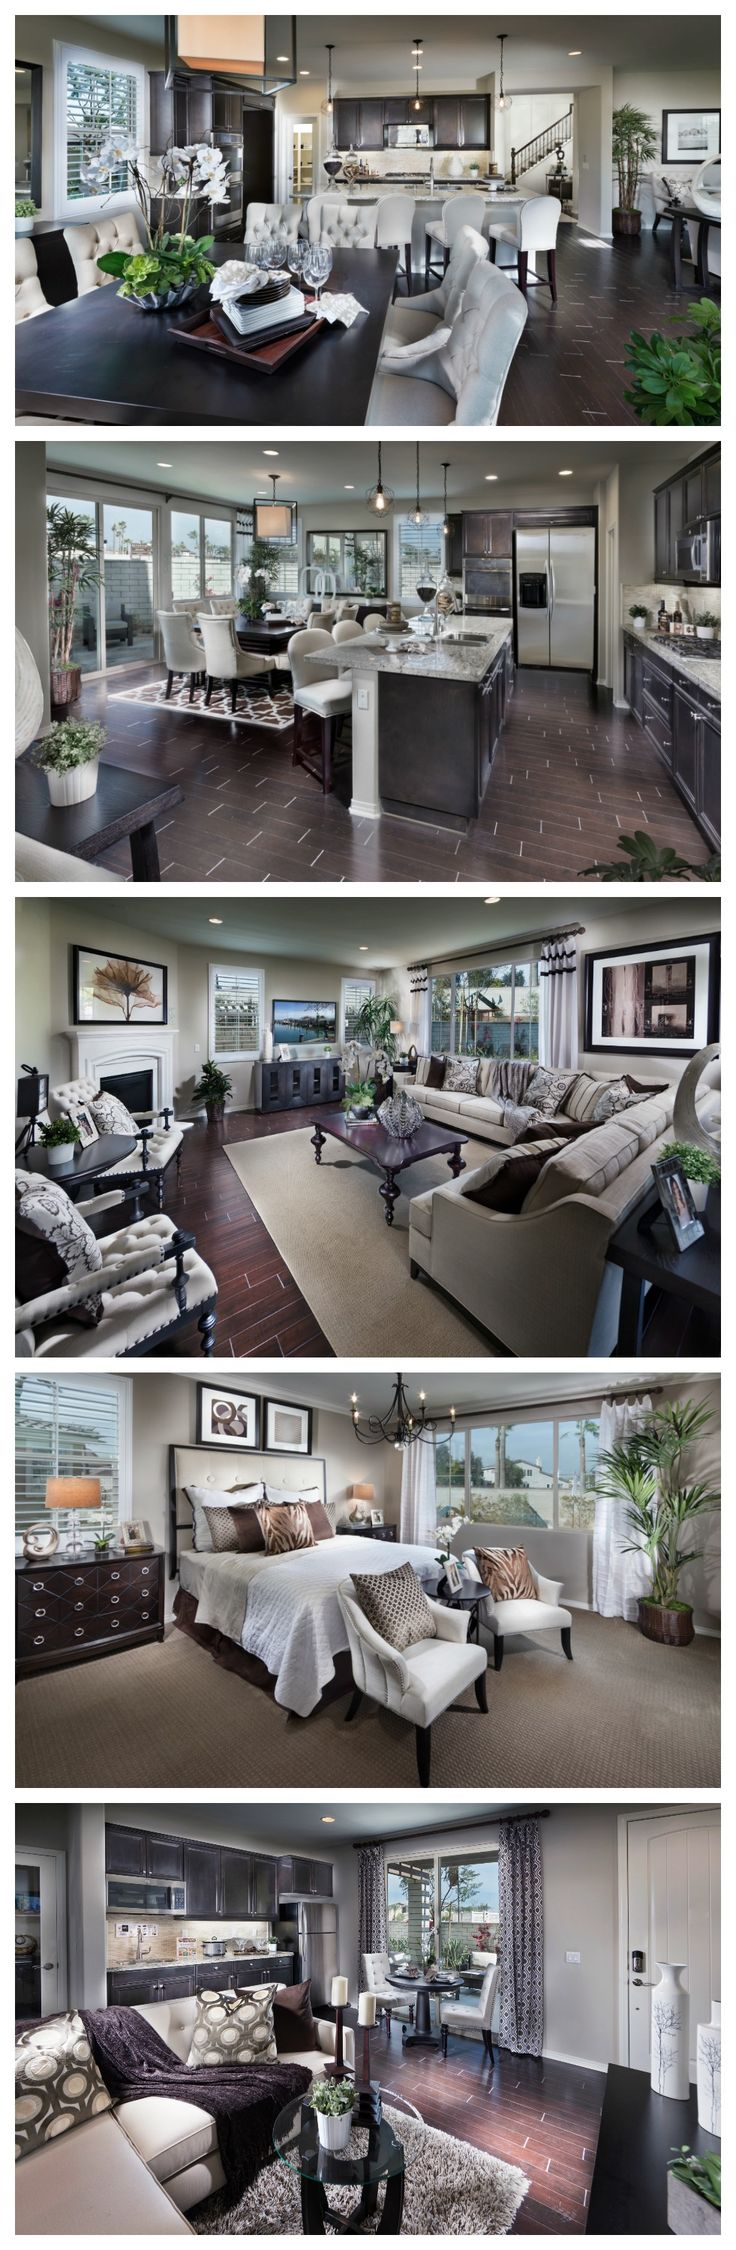 Beautiful 3264 Next Gen® MODEL home at Estancia West in Eastvale, California #homedecor #nextgen